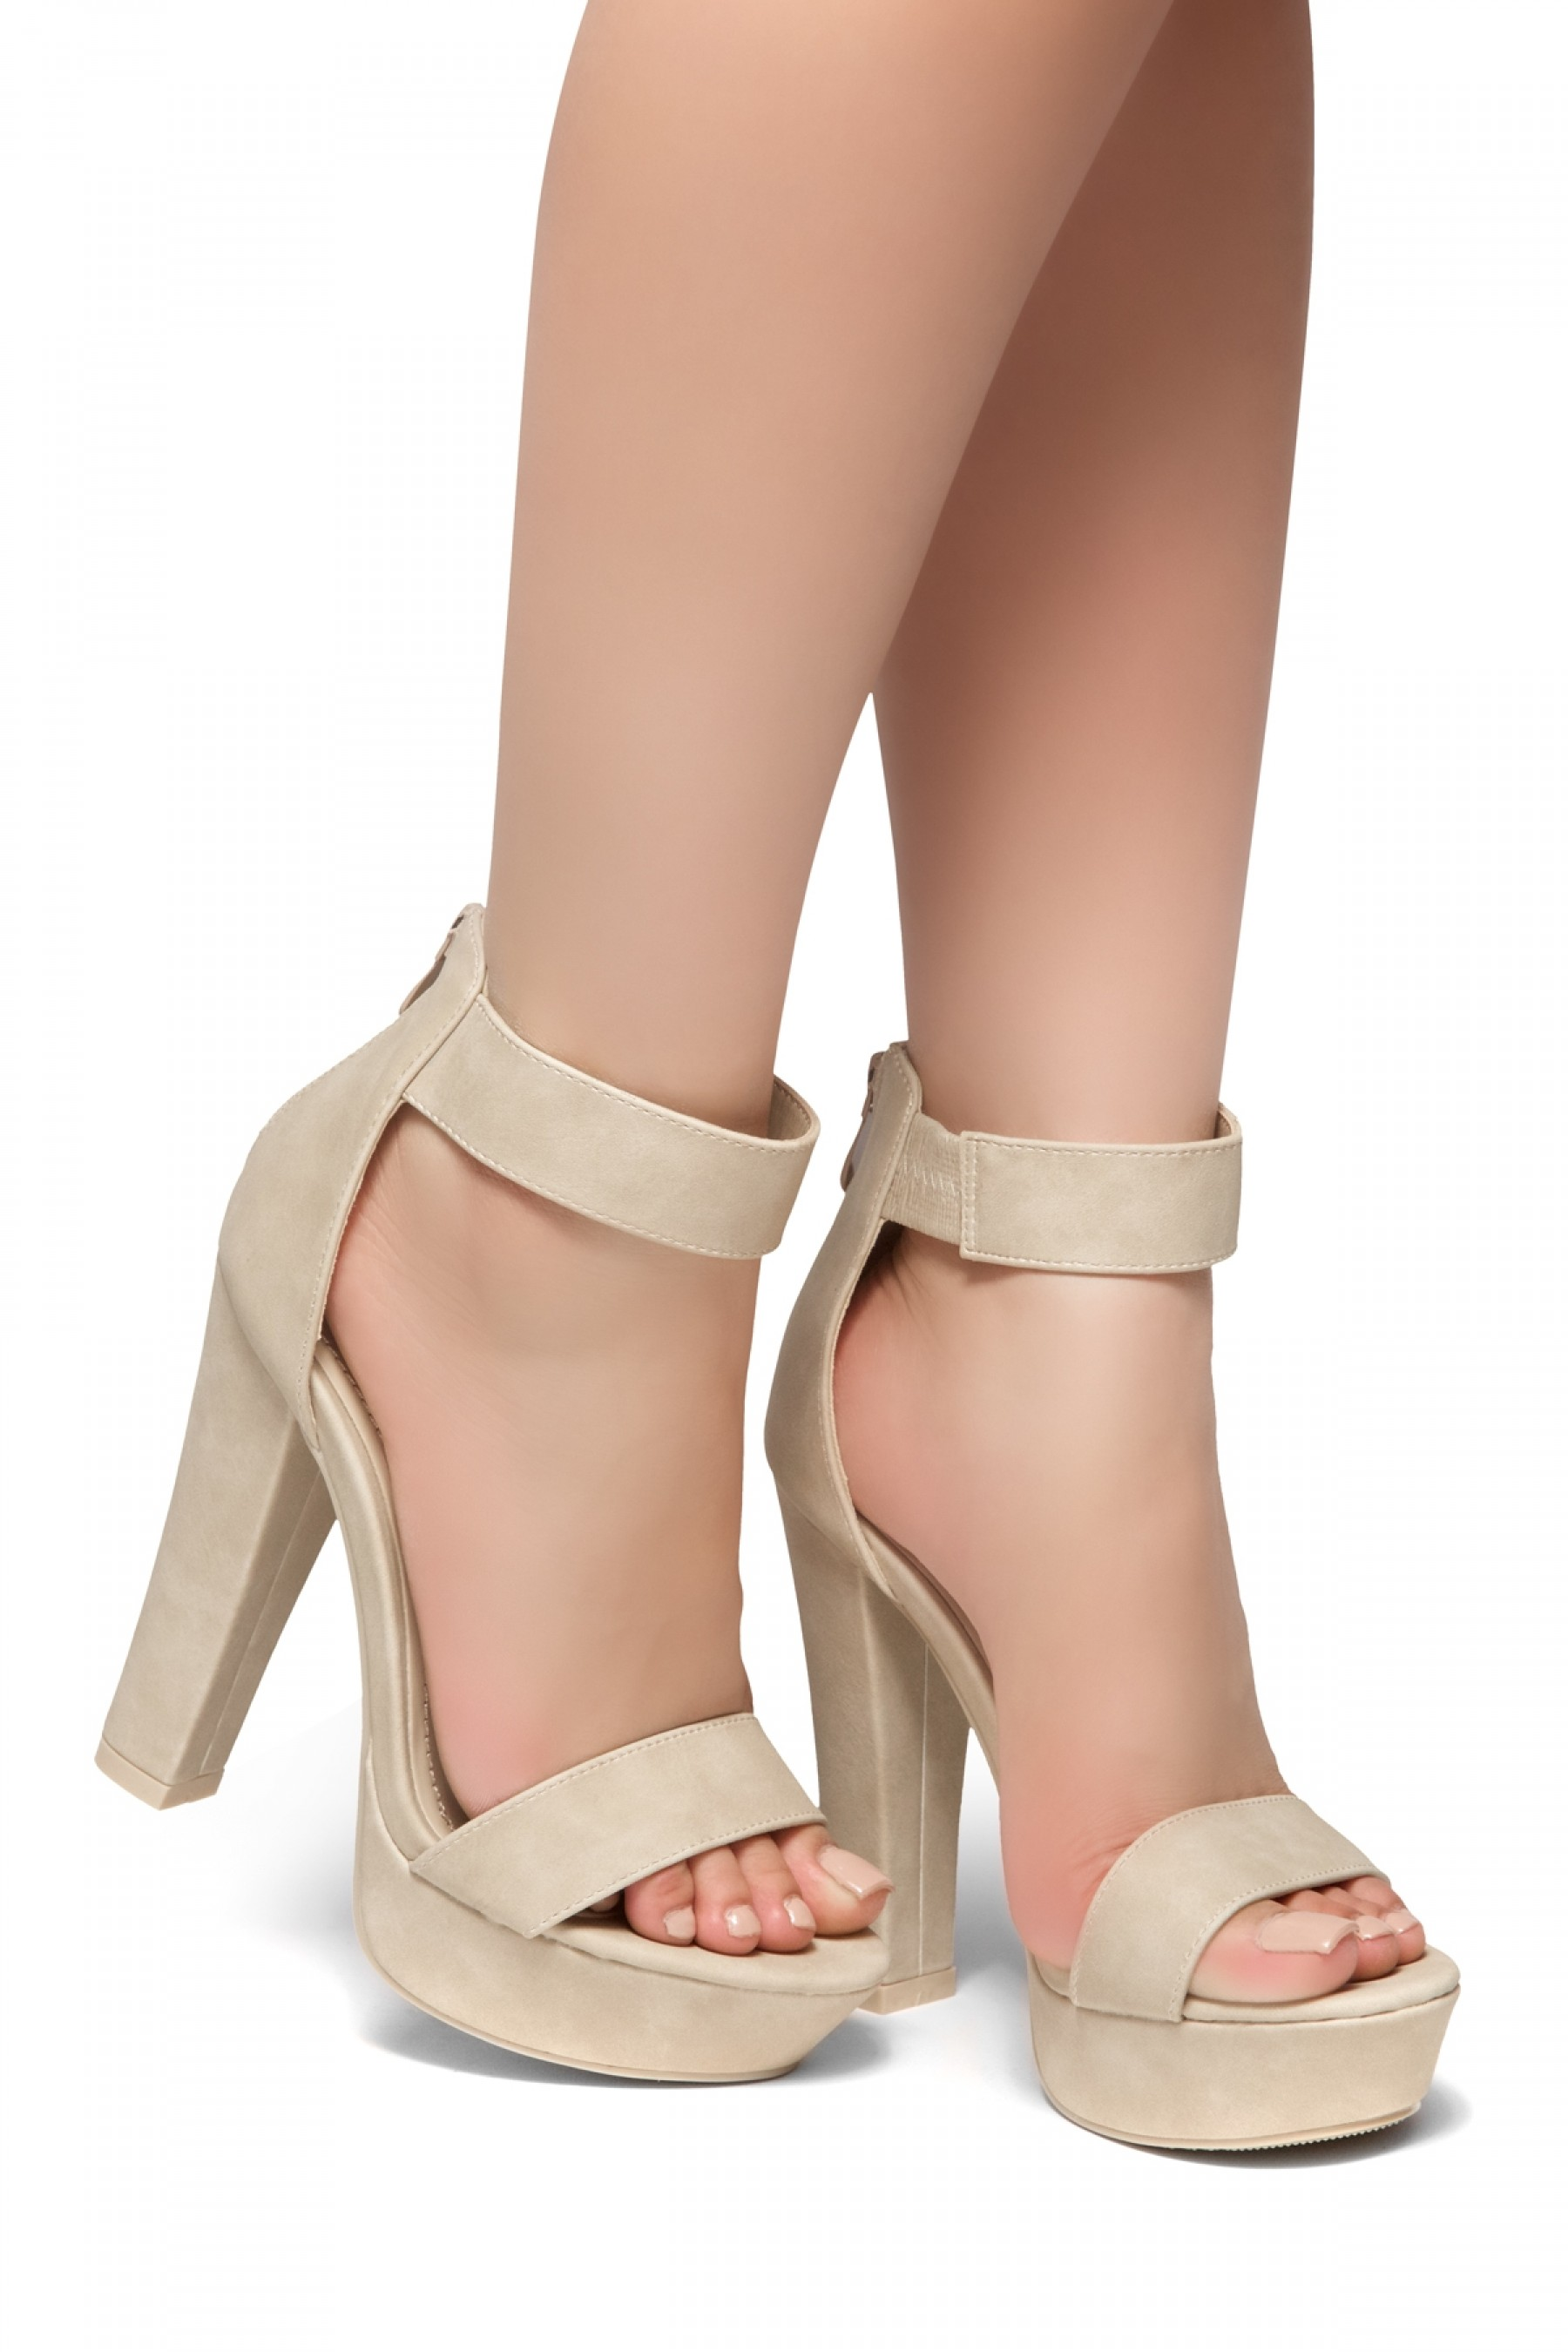 Nude heels with ankle strap frozen photos 3